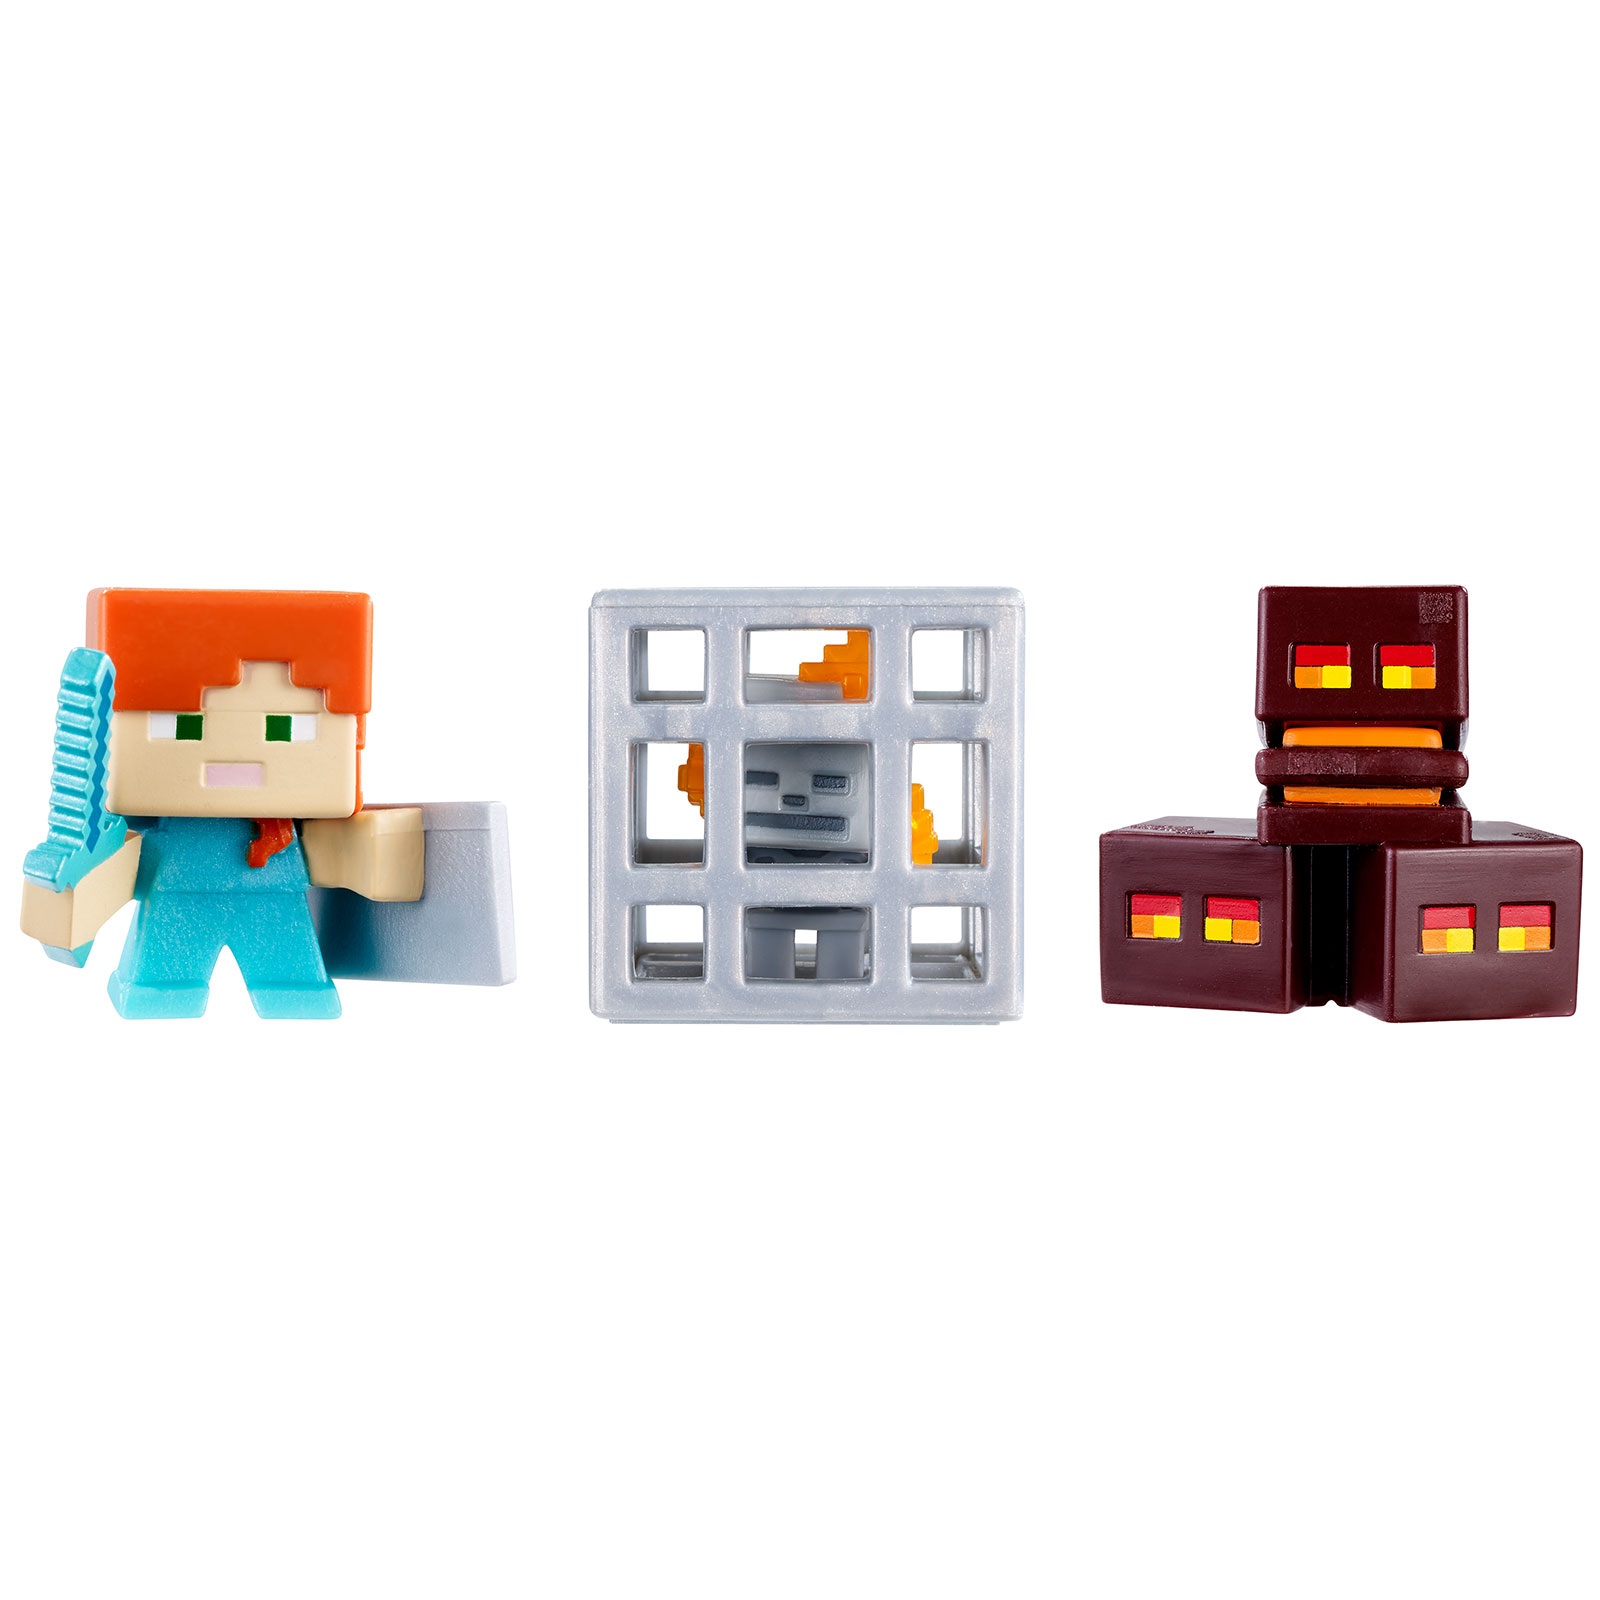 Mattel Skeleton in Cage Minecraft Mini Figure (3 Pack) - Magma Cubes Alex with Shield PartNumber: 004W008082280021P